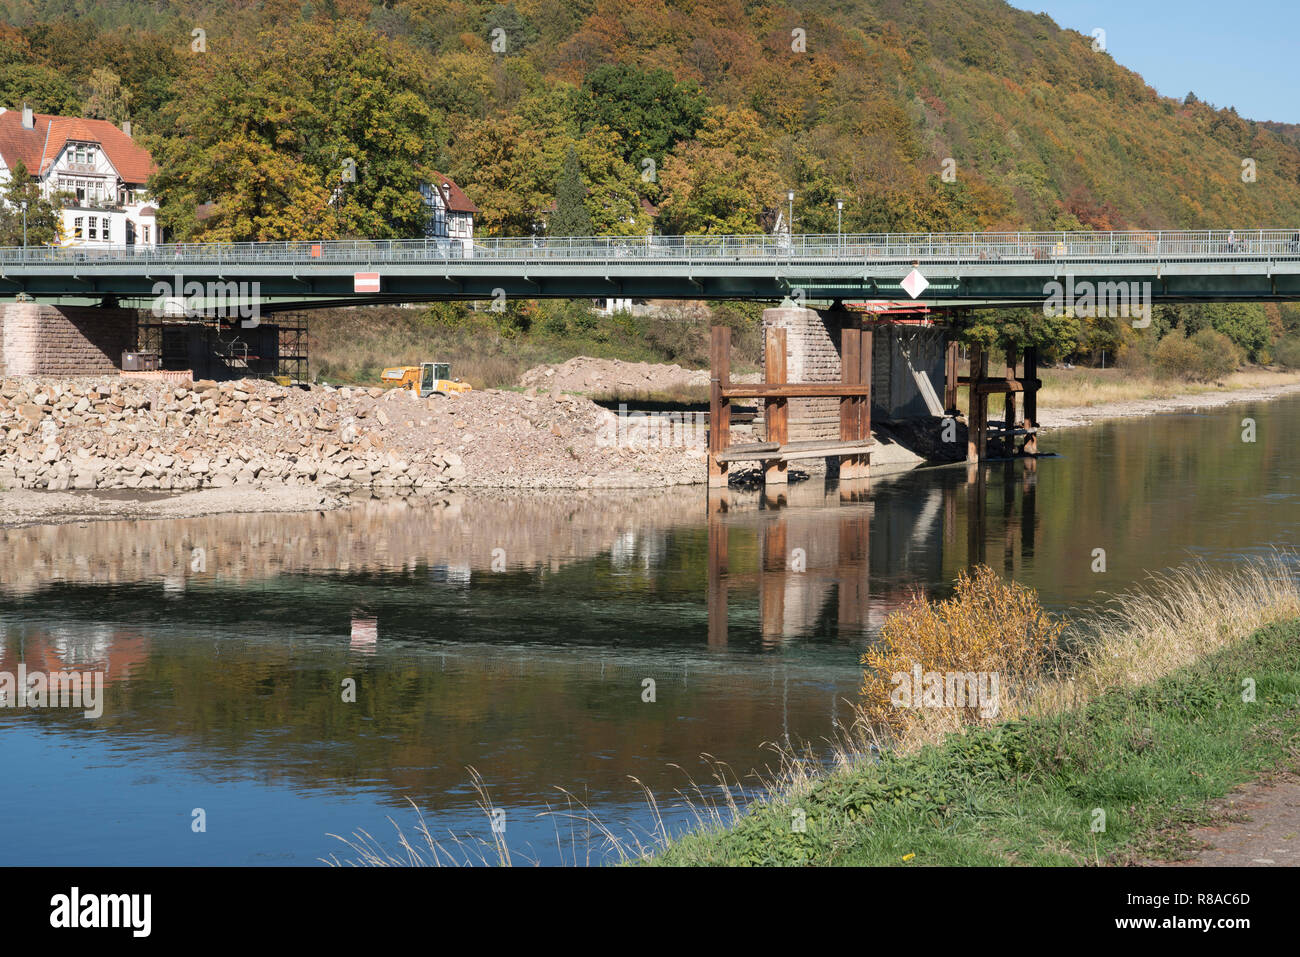 Old river Weser bridge at Bad Karlshafen, Upper Weser Valley,  Weser Uplands, Weserbergland, Hesse, Germany, Europe - Stock Image